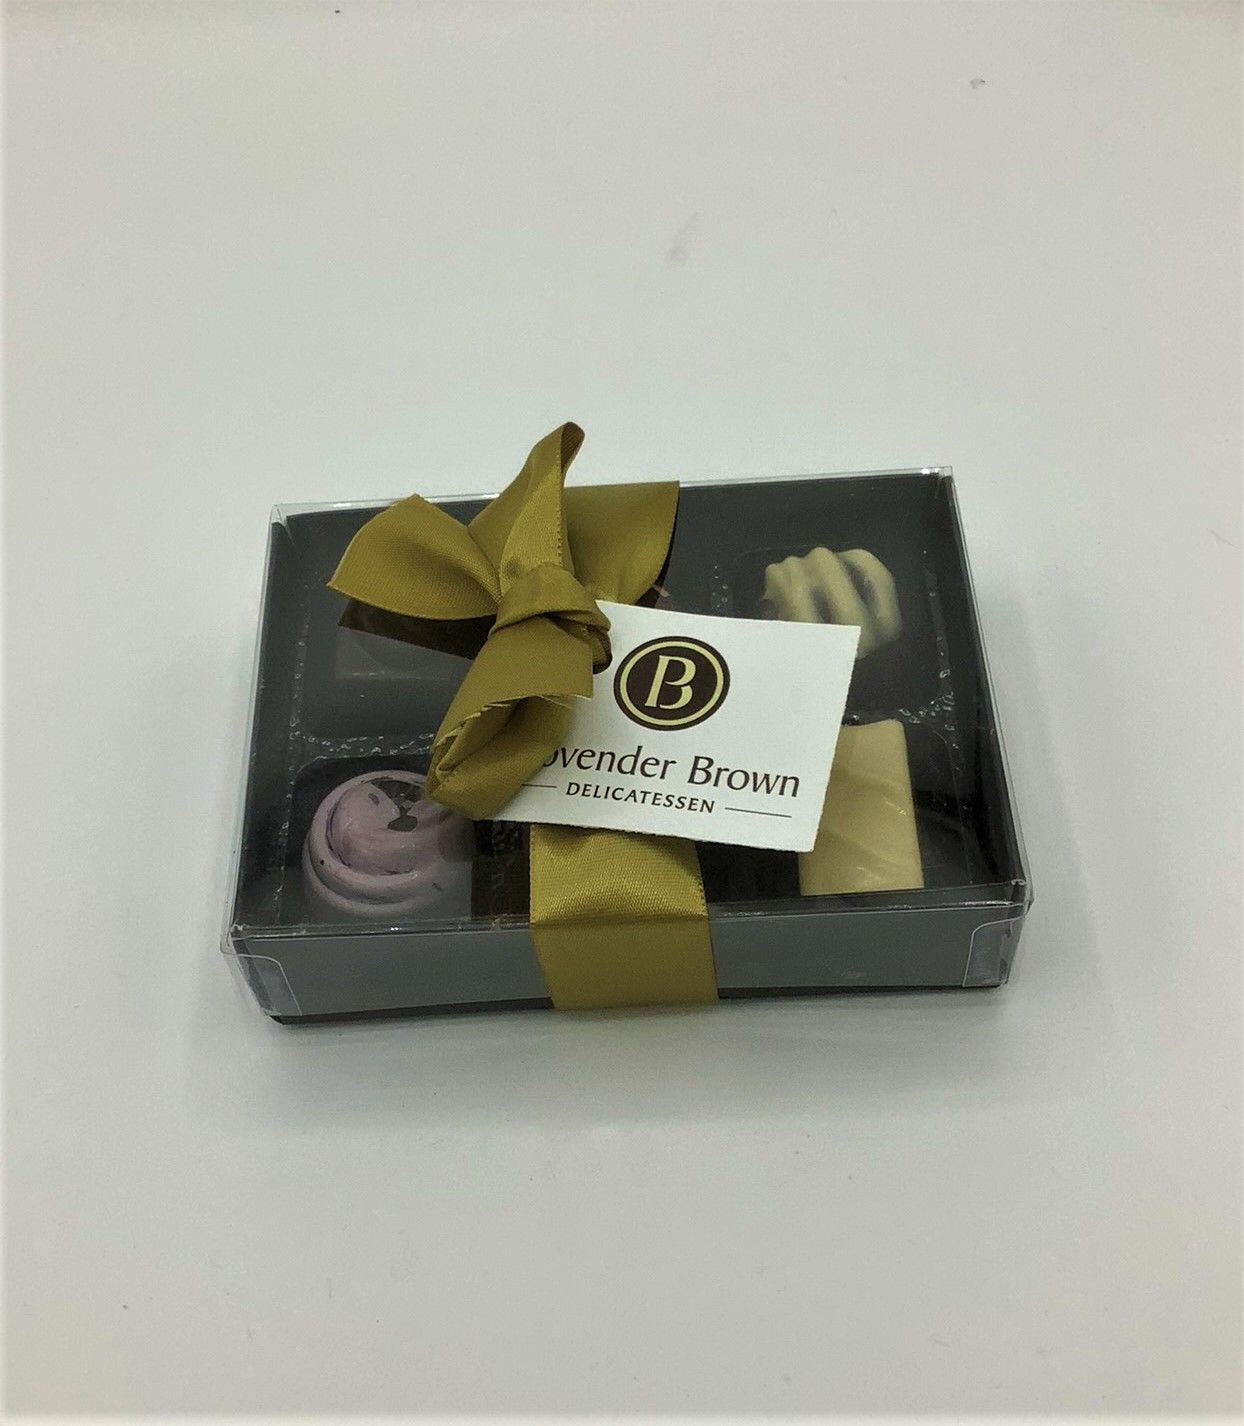 Provender Brown 6 Chocolates